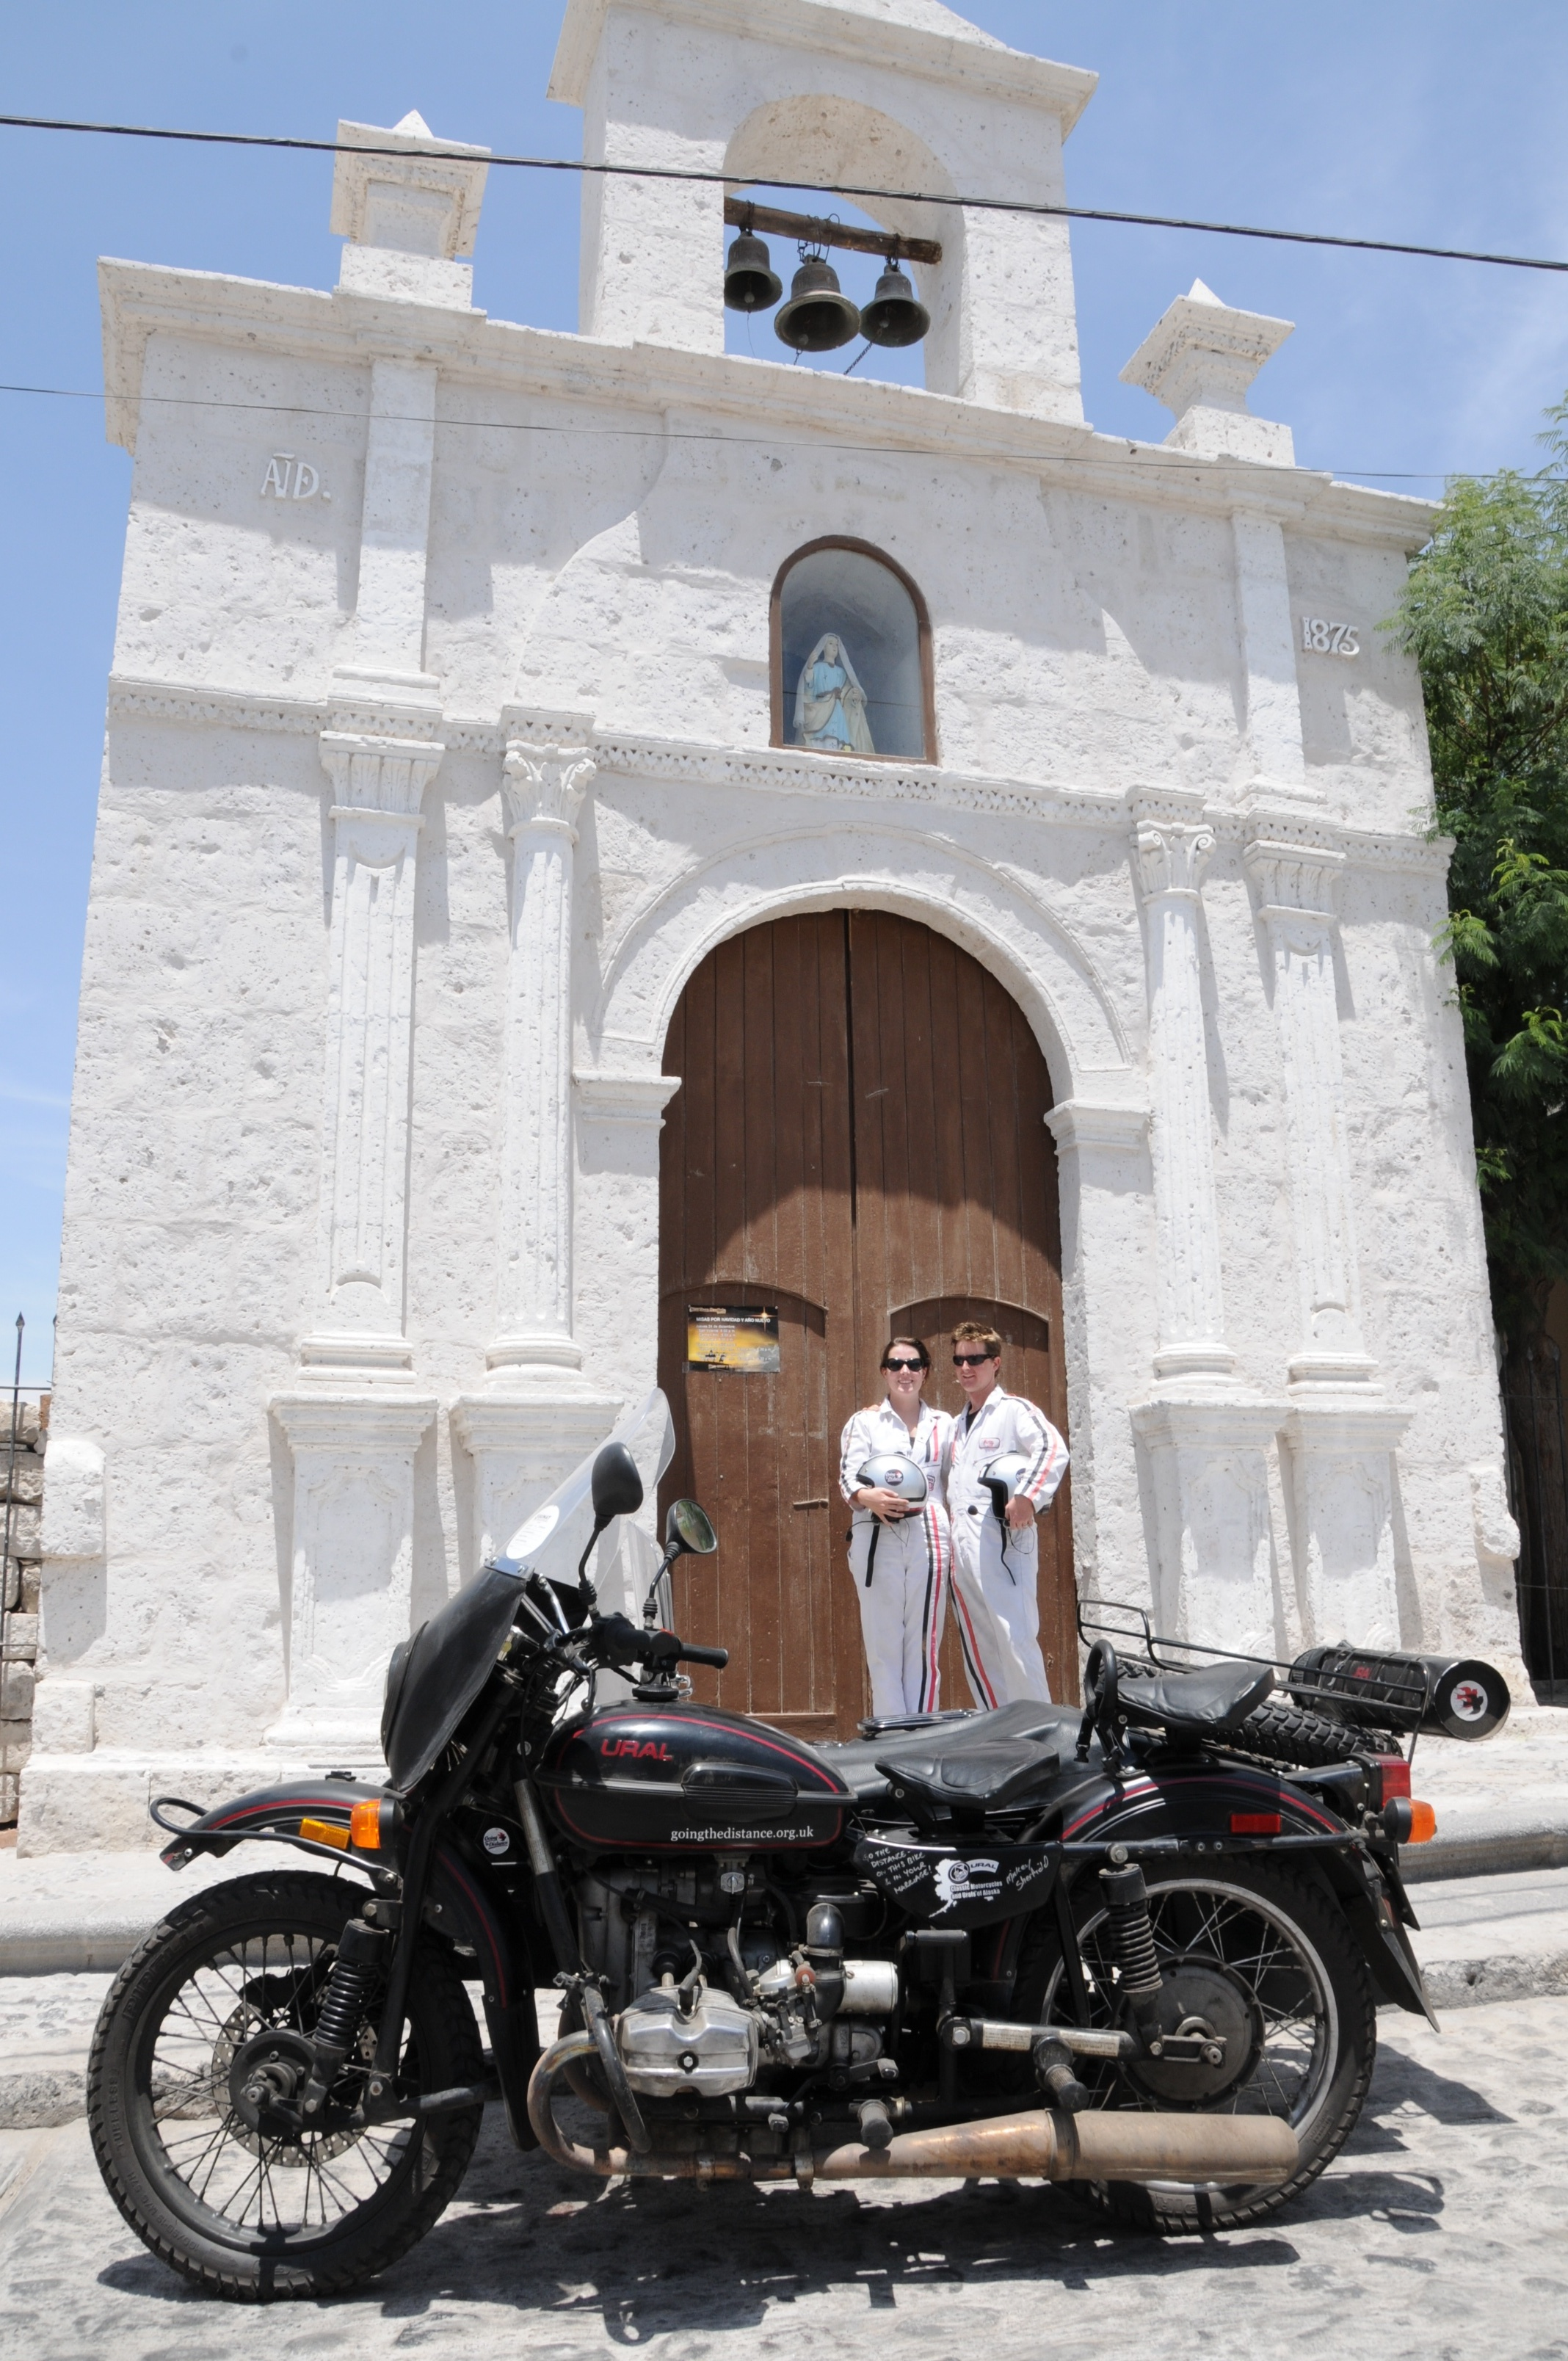 m&a standing in front of white church.jpg